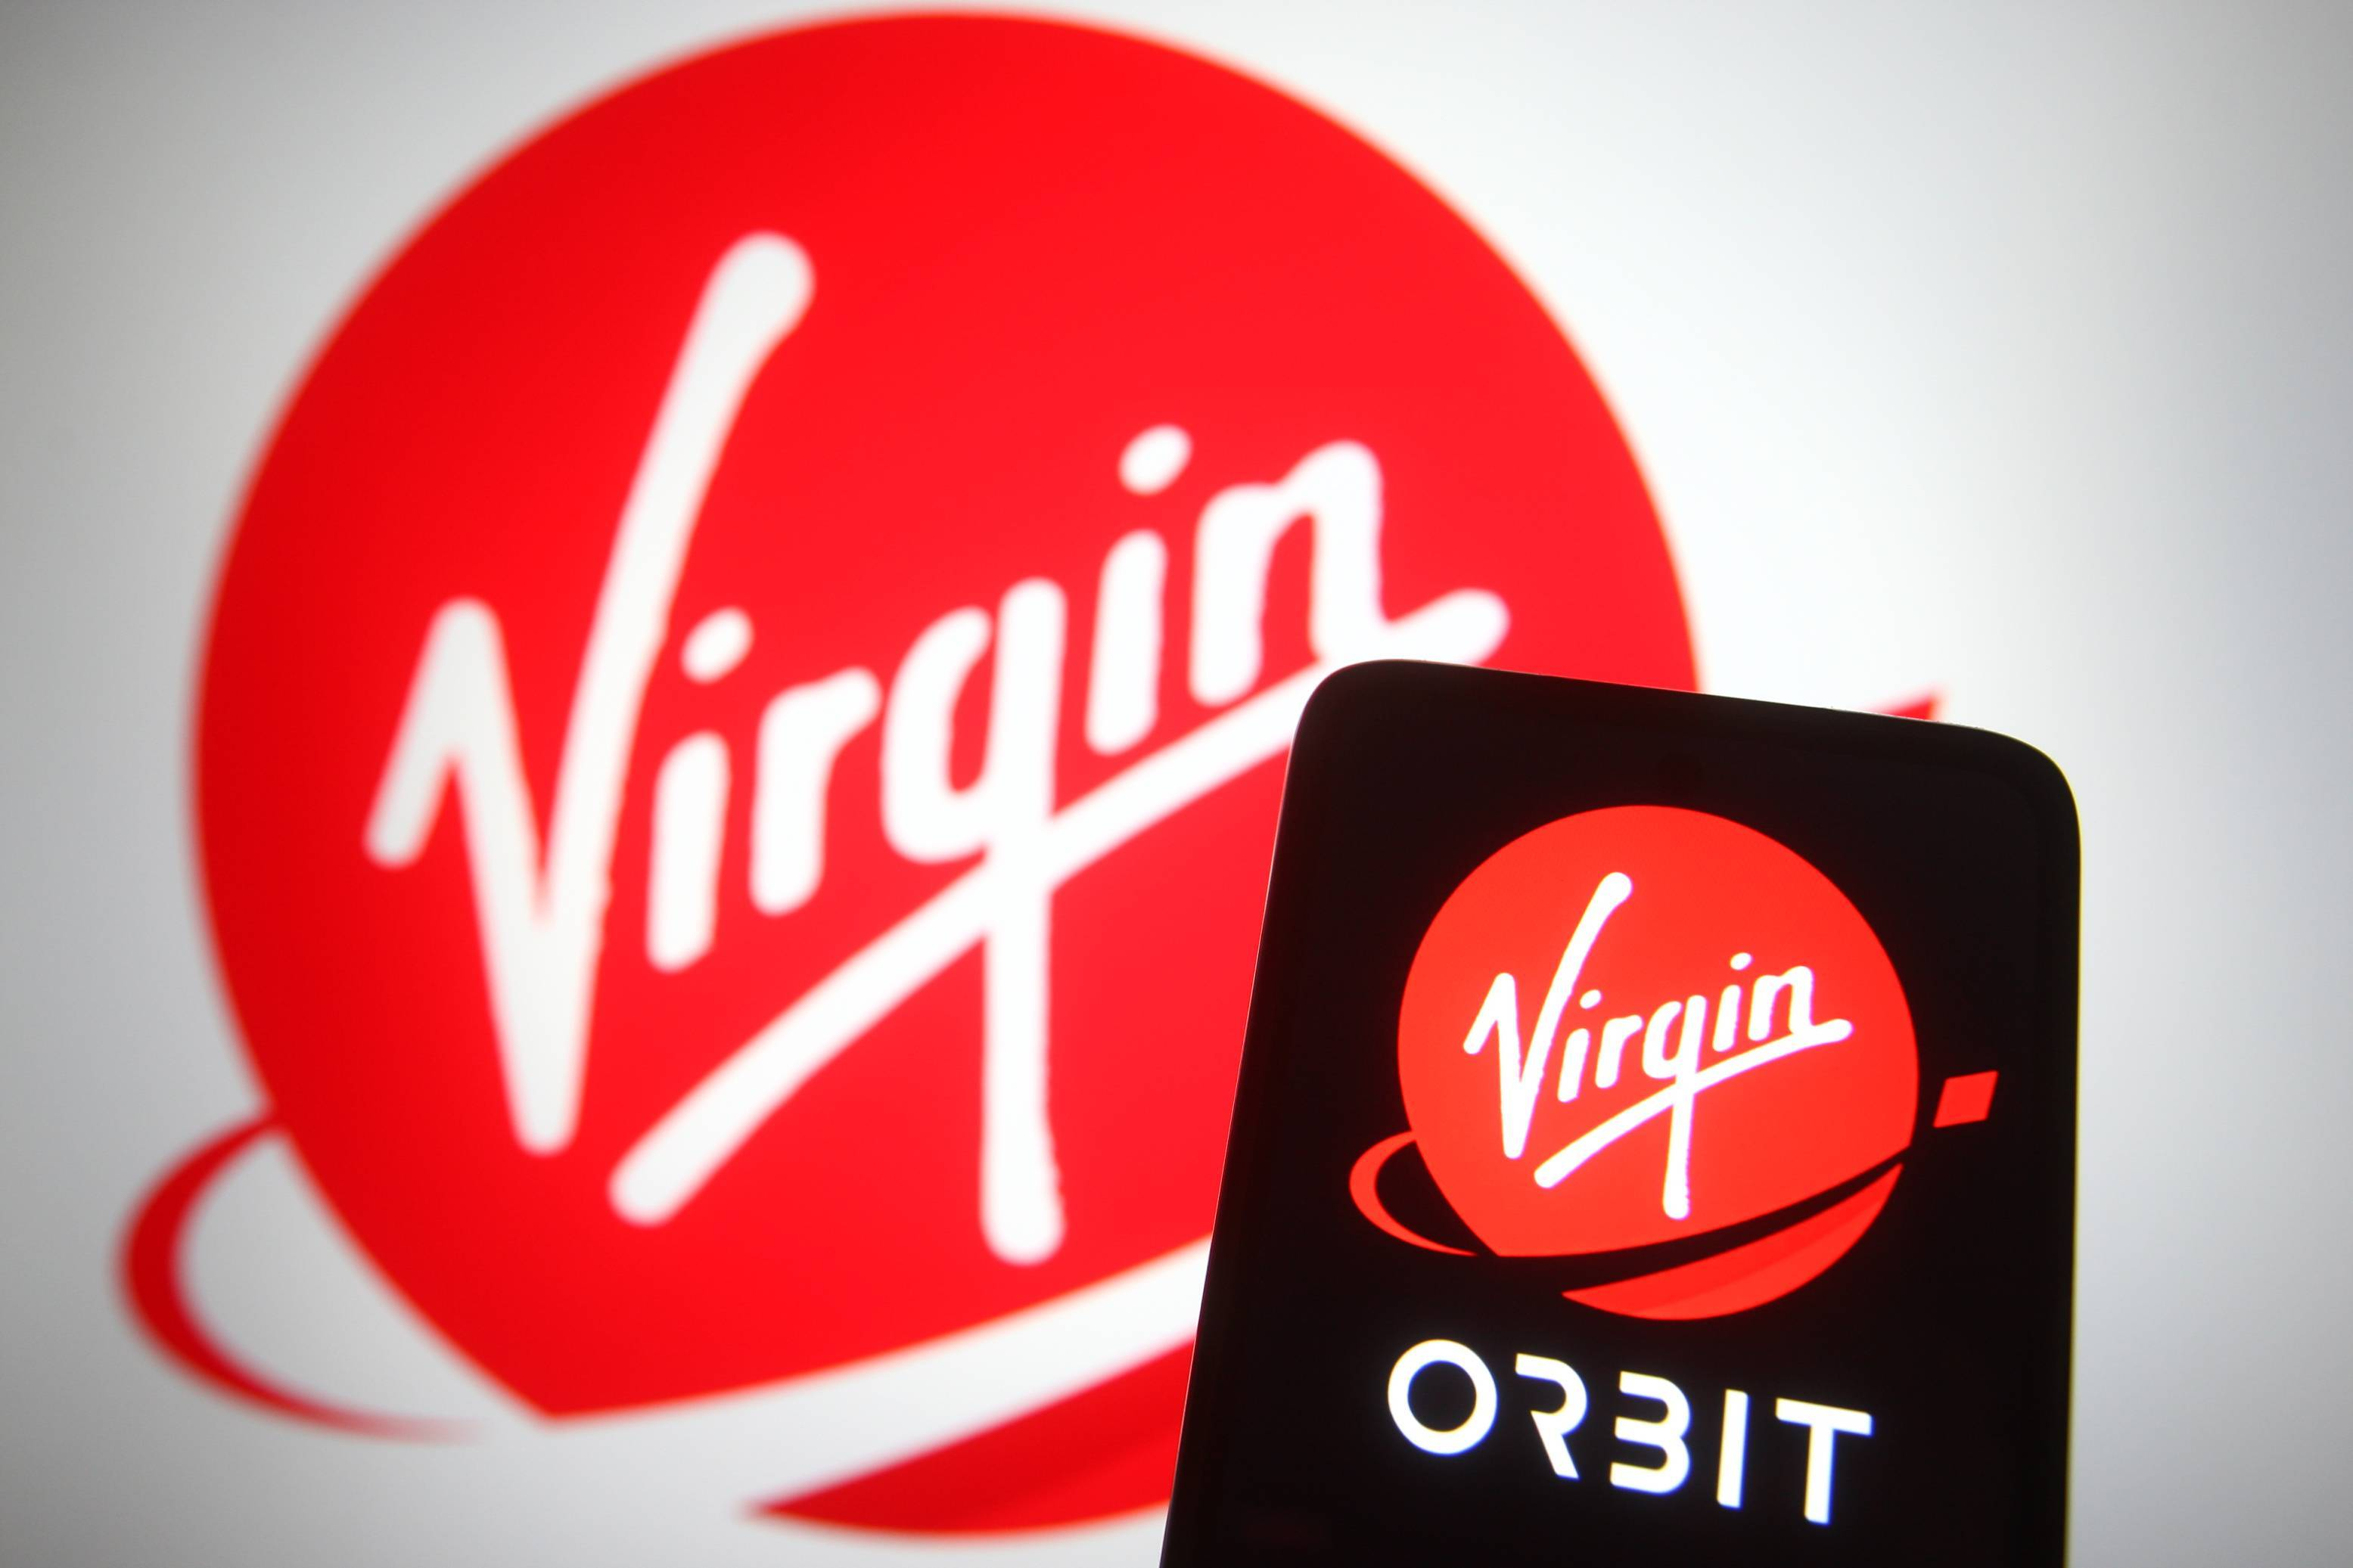 Here's 3 things to take away from the Virgin Orbit merger news